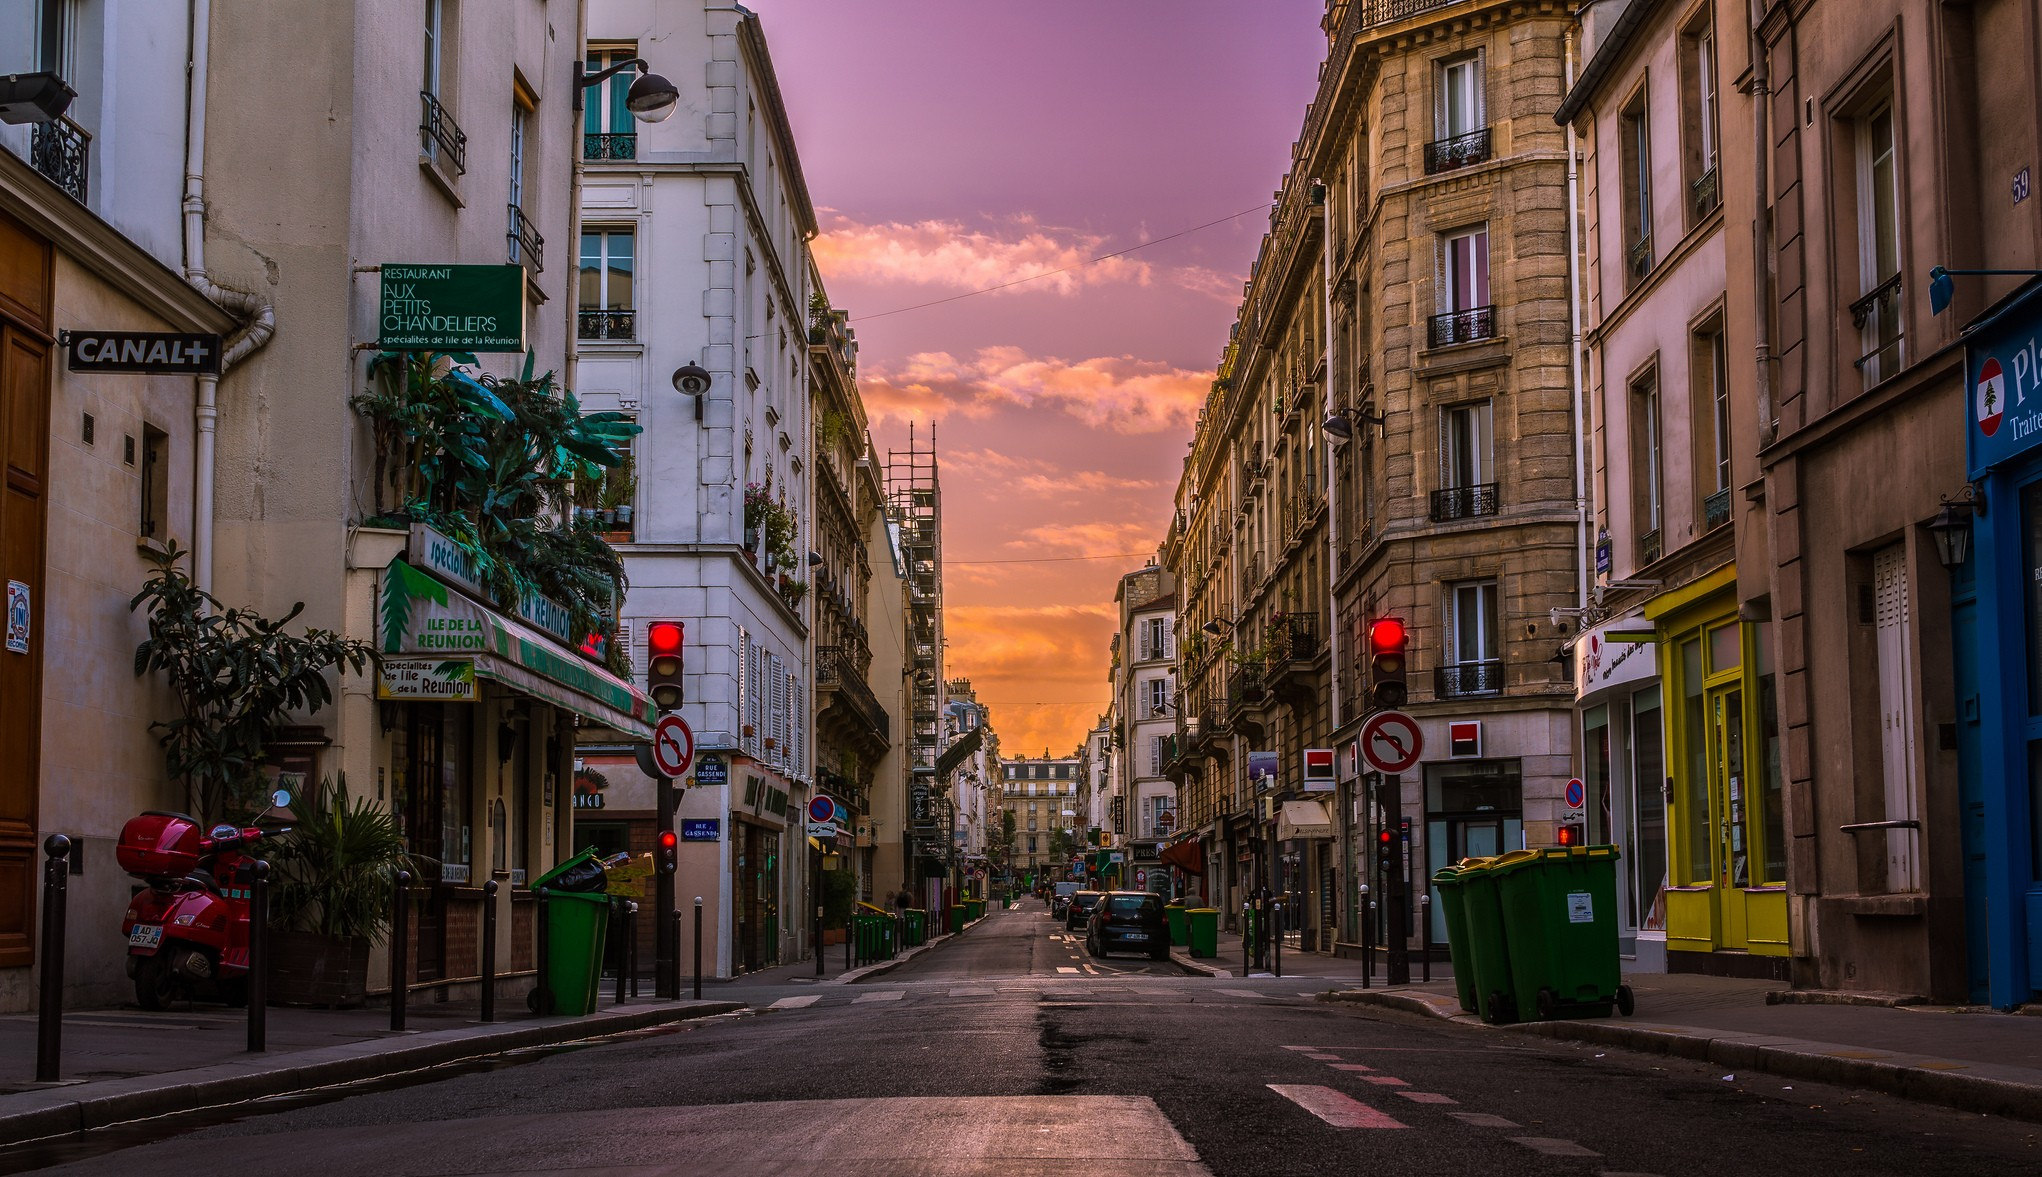 sunrise-on-a-paris-street--tommie-hansen-flickr-e1484816402657